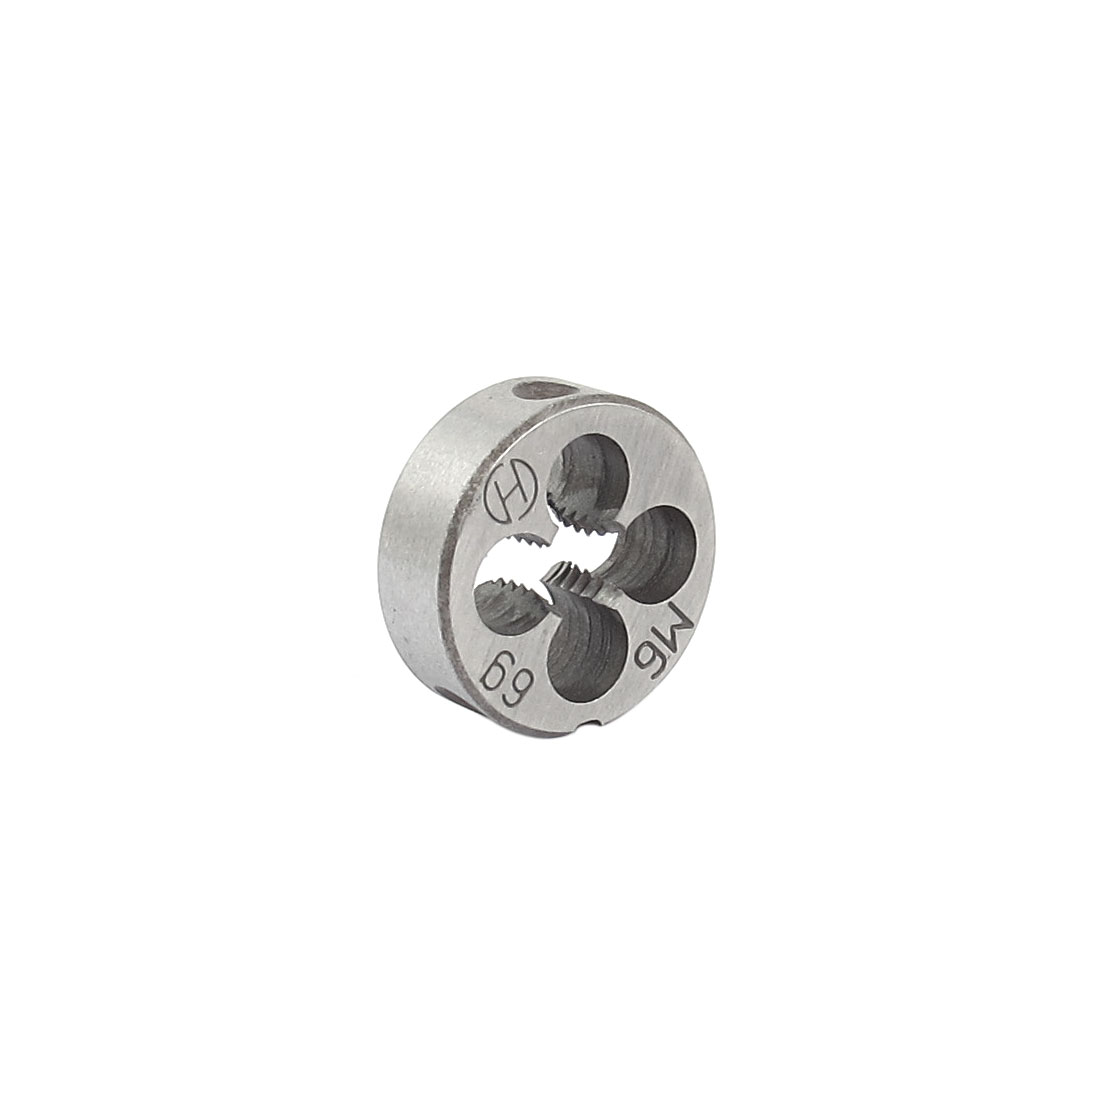 20mm Outside Dia M6 Coarse Thread Cutting Tool Round Die Gray